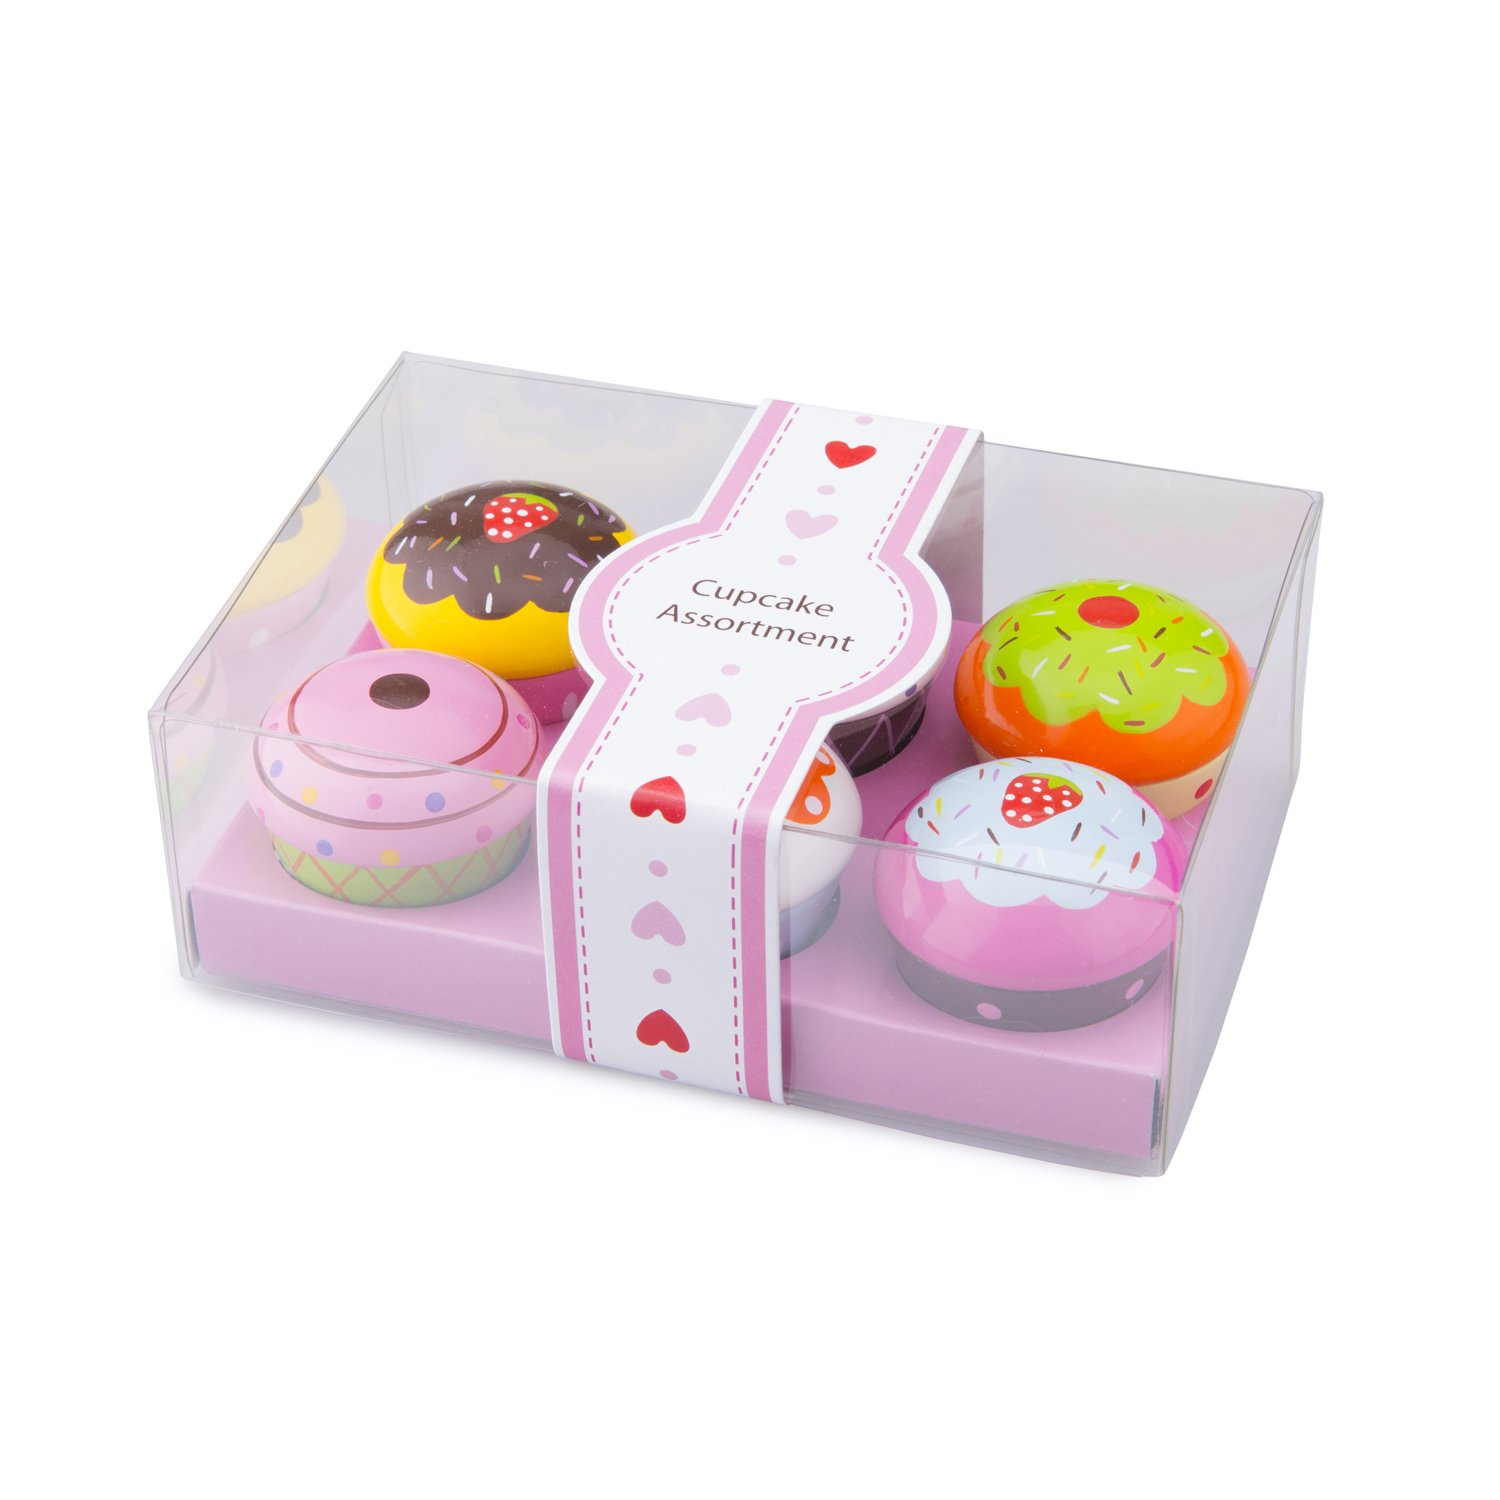 New Classic Toys - Cupcake Assortment in Giftbox - 6 Pcs. Childrens Pastry Playset